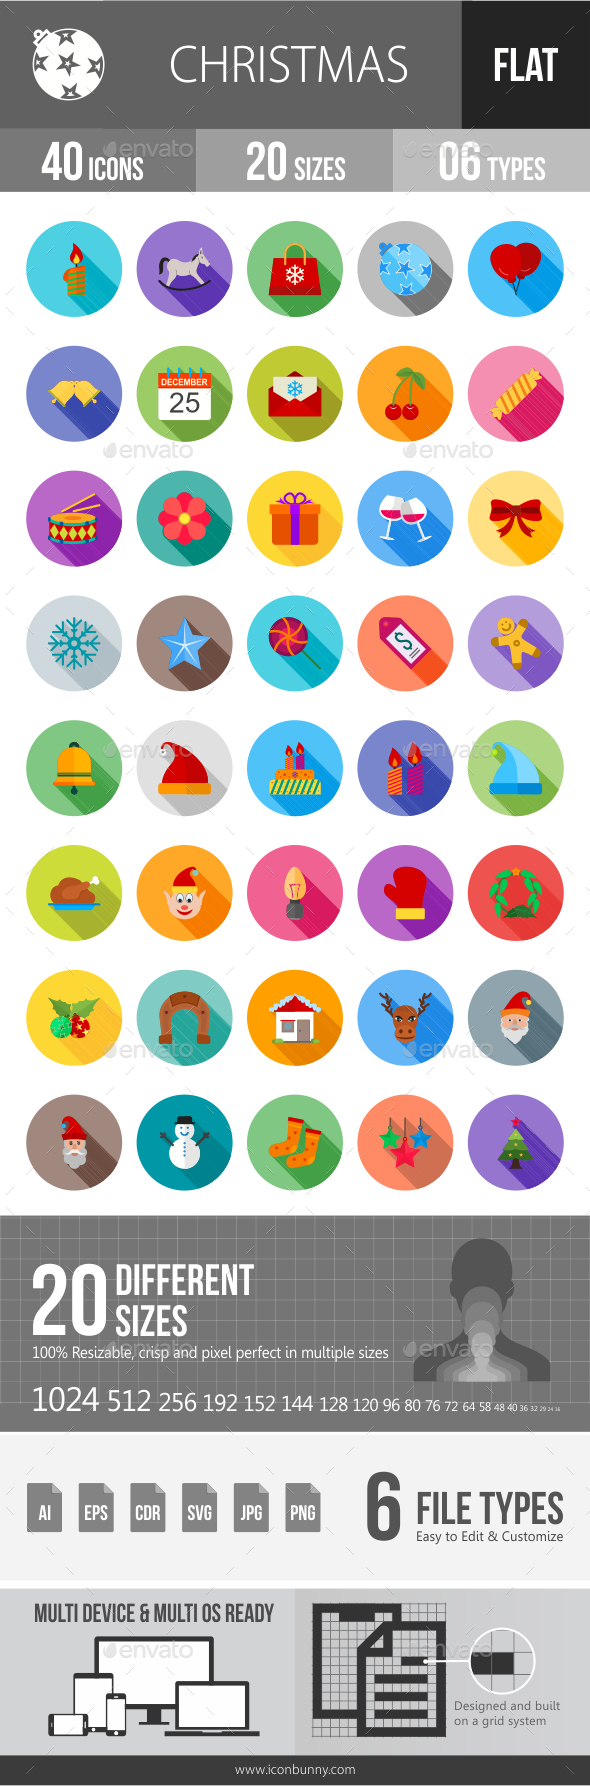 Christmas Flat Shadowed Icons